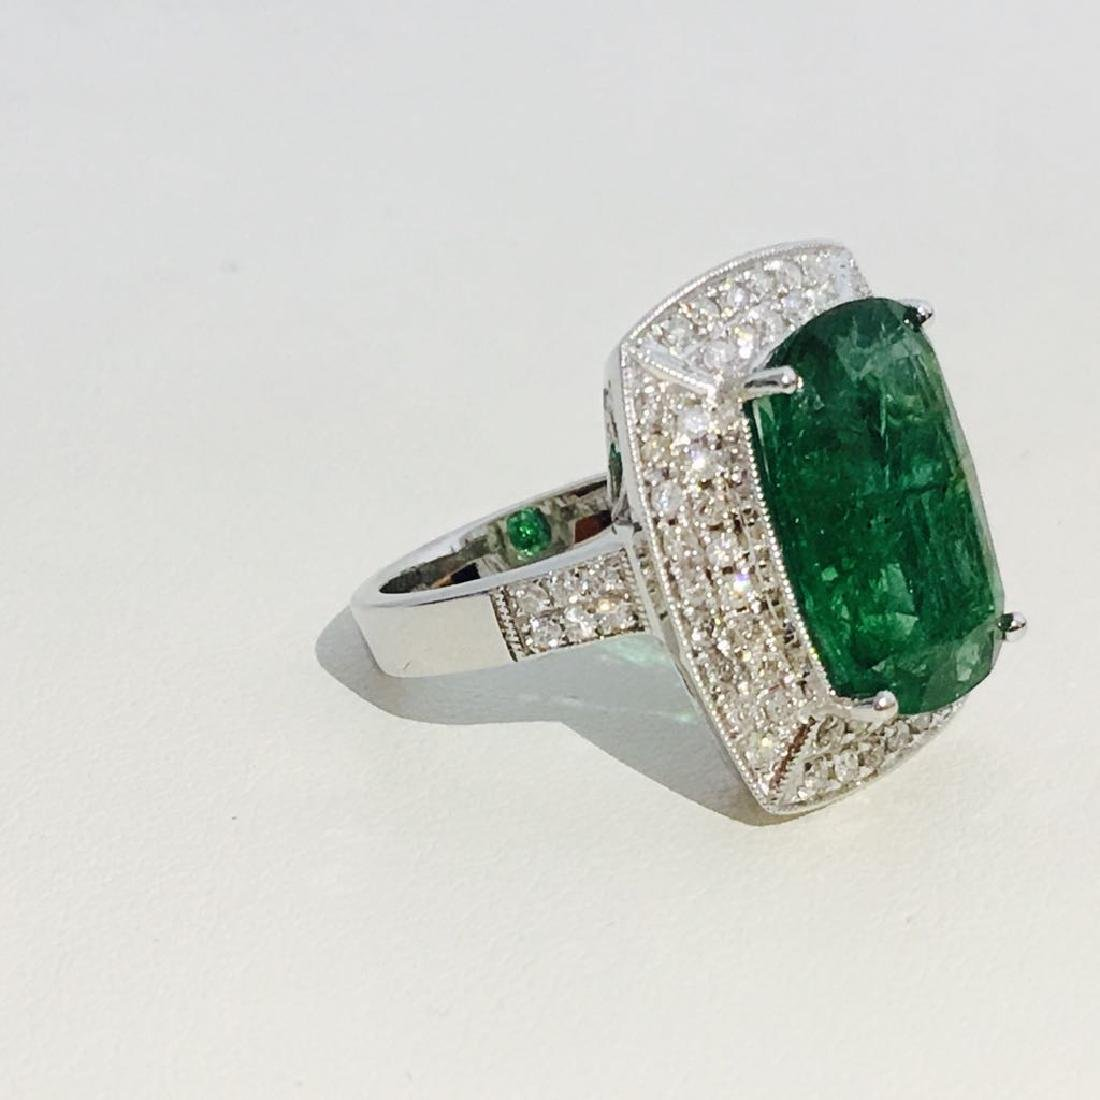 14K Gold, 100% natural 7.25 CT Emerald and Diamond Ring - 3